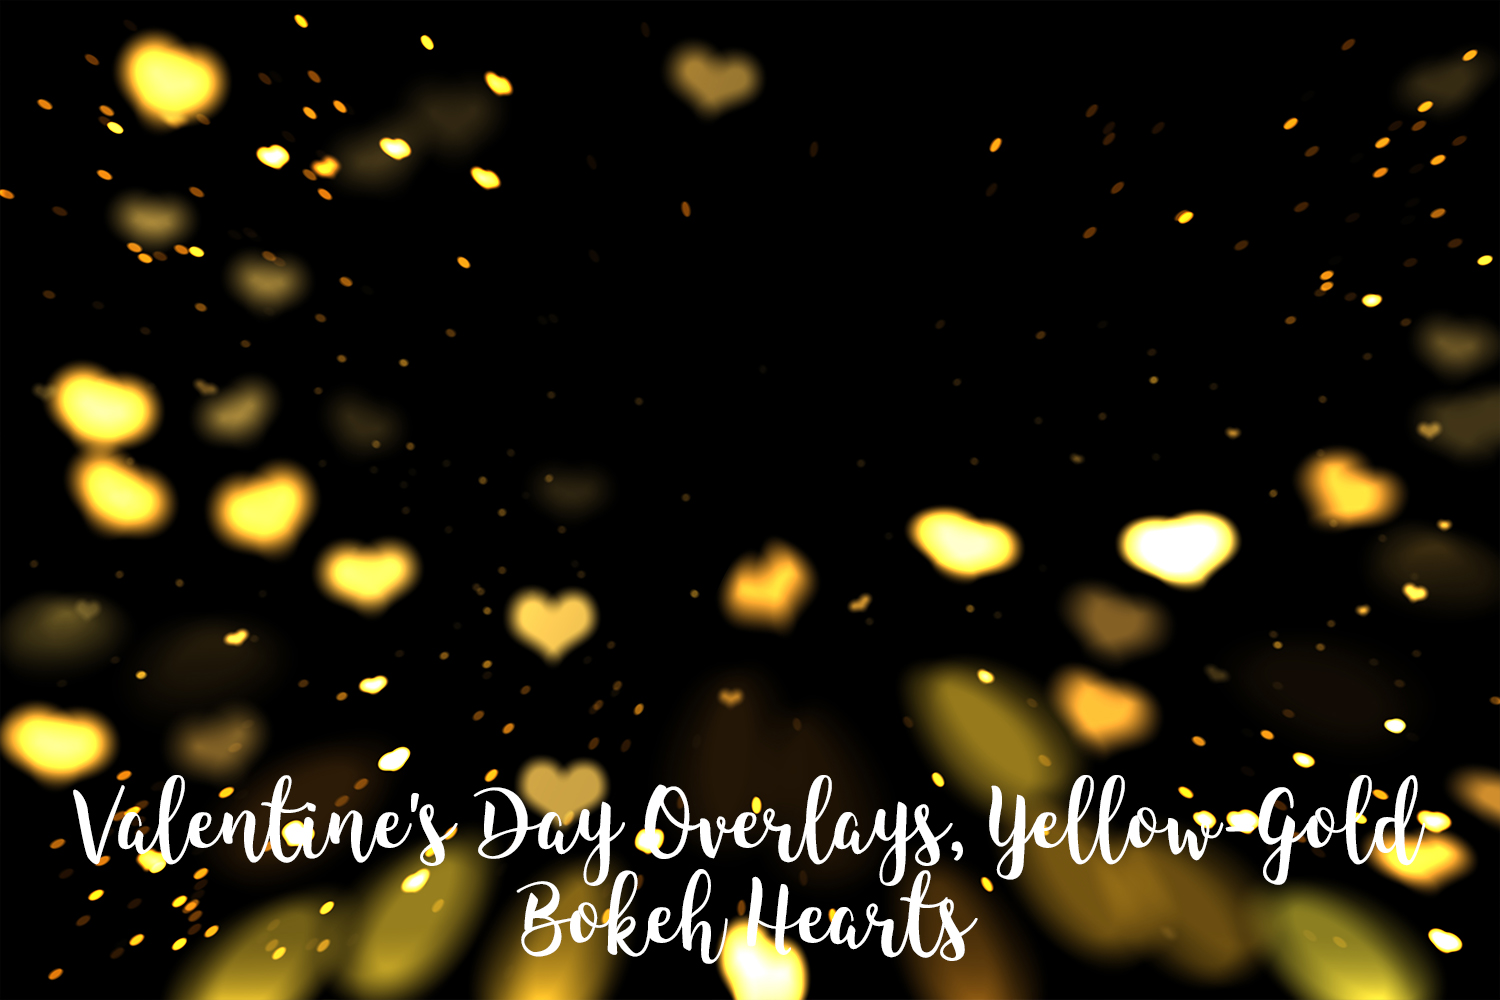 Valentine's Day Overlays, Yellow Gold Hearts Bokeh Overlays example image 8